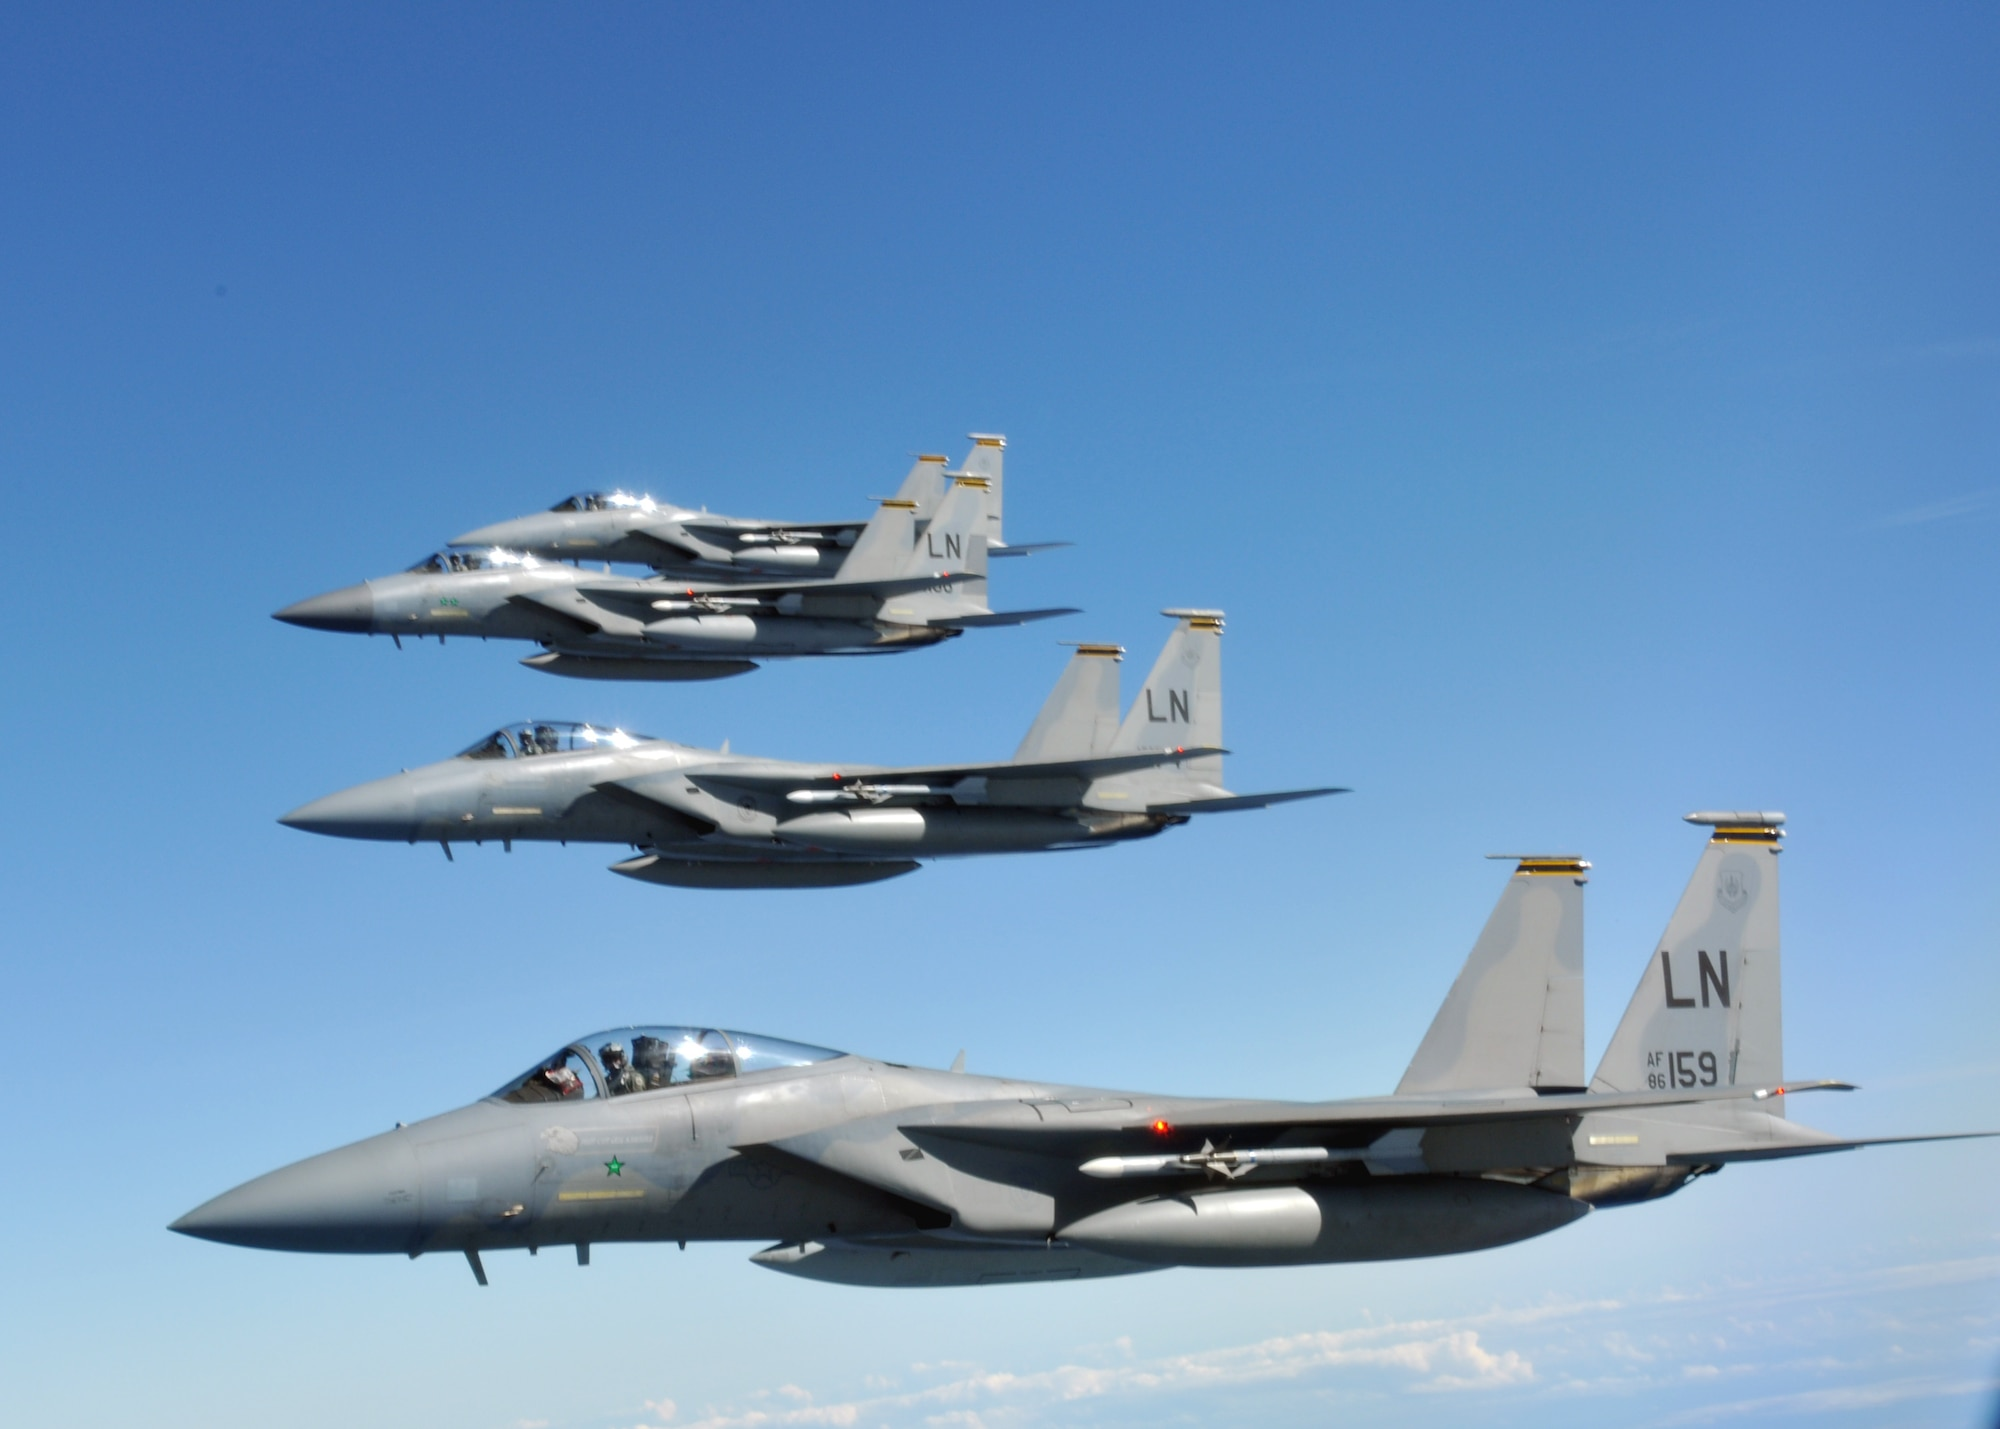 Four U.S. Air Force F-15C Eagles fly in formation after refueling Sept. 12, 2013, on their way to the Arctic Challenge exercise in Norway. The F-15C, in coordination with fighters from other nations, provided the air-to-air attack element in many of the scenarios during the exercise.